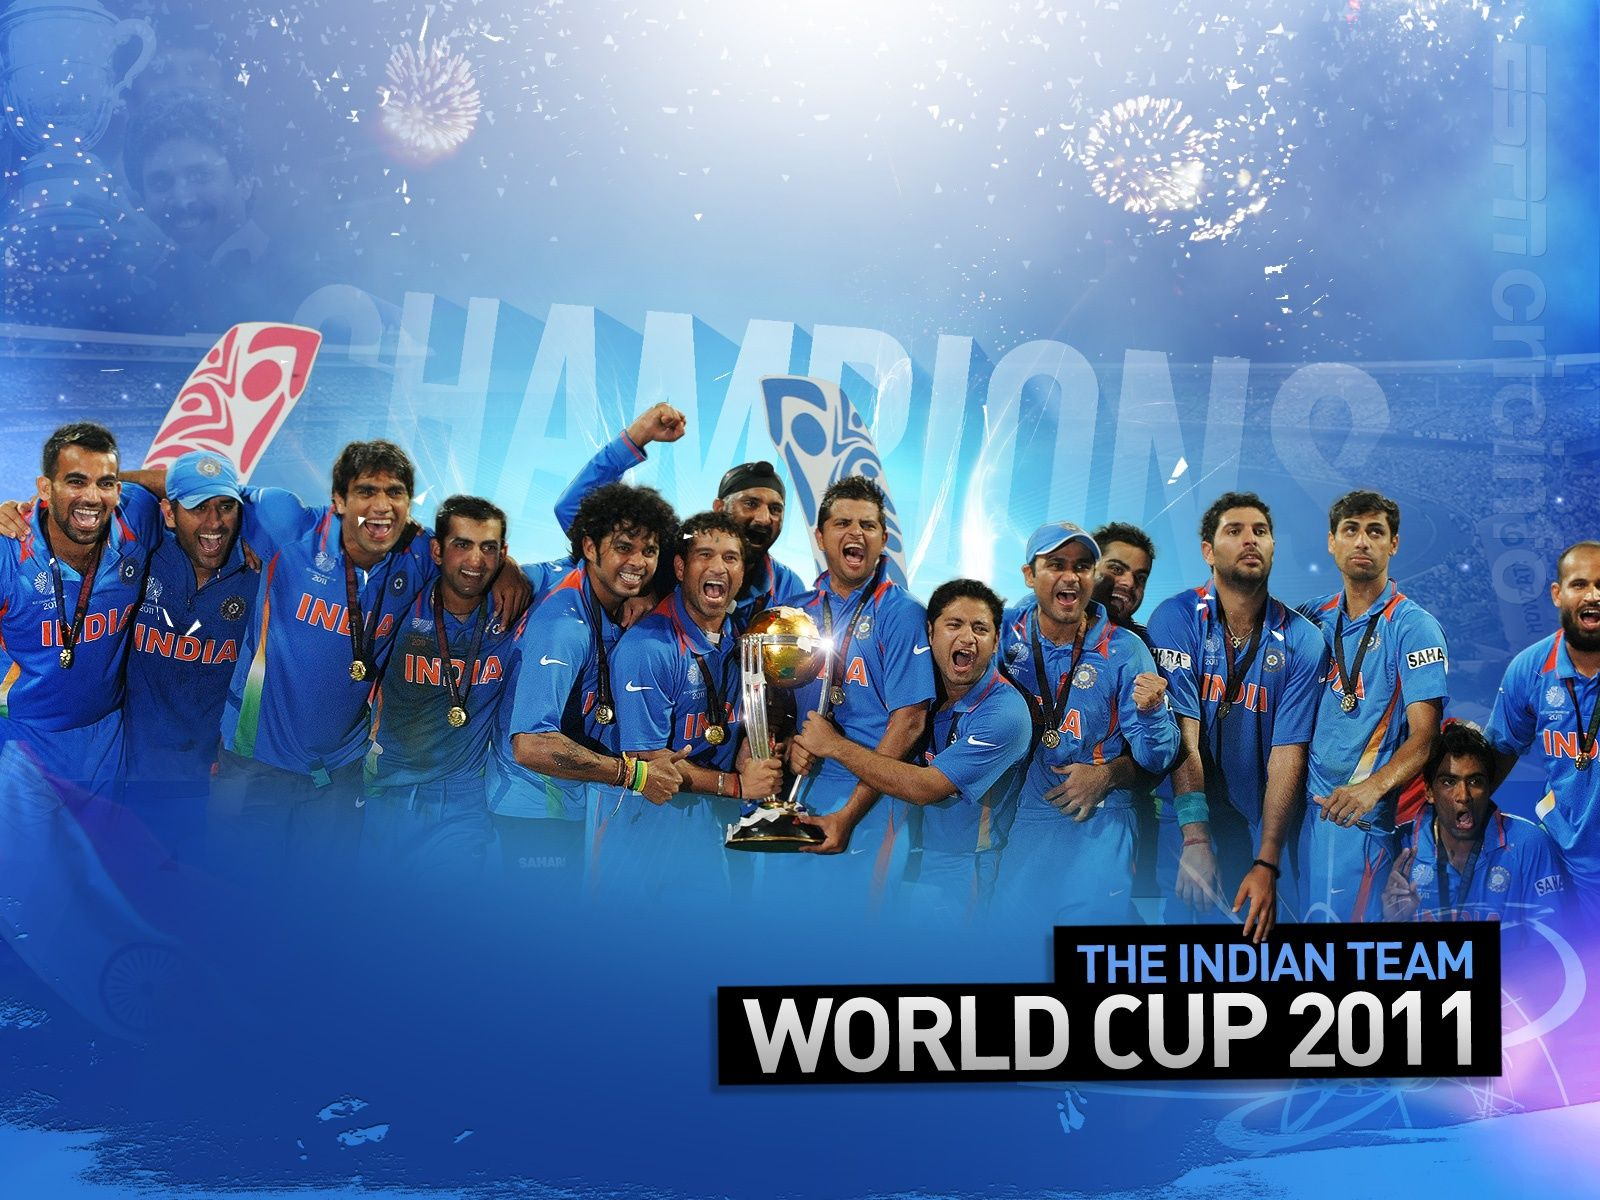 India Team World Cup 2011 Wallpapers In Jpg Format For Free Download Team Wallpaper Cricket Wallpapers Cricket World Cup